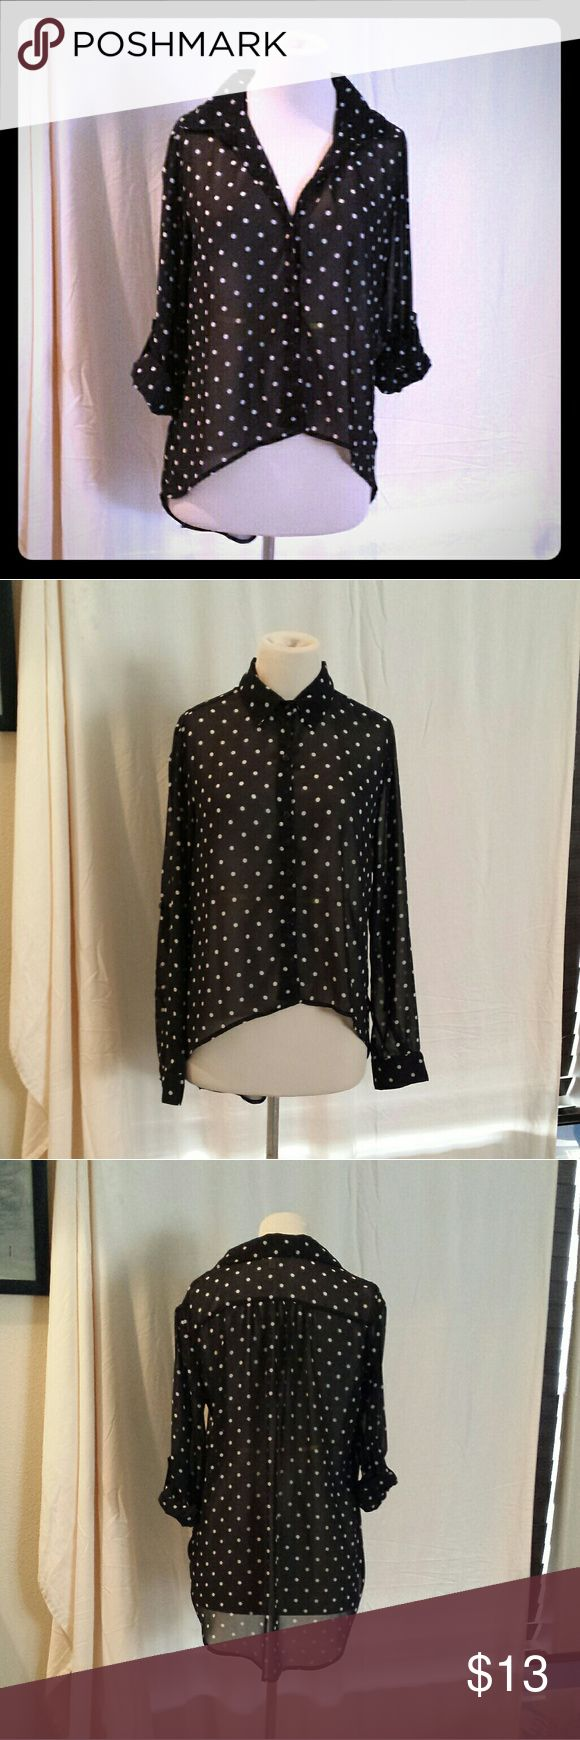 Marisol Polka Dot Slouchy Hi-Low Blouse Super easy to wear different ways!  Only 2 pictured, more variations possible.   Button holes are showing signs of use,  so I included a pic.   Can be long sleeve or 3/4 sleeve  LAYING FLAT-  Length: 22in  Pit to pit: 23in Waist: 21in    #black #white #blackandwhite #polkadots #dots #loose #slouchy #buttons #buttonup #convertible #airy #silky #fancy #cute #flirty #seethrough #chiffon #hilow #highlow #classy #classic #neutral #goeswitheverything #work…